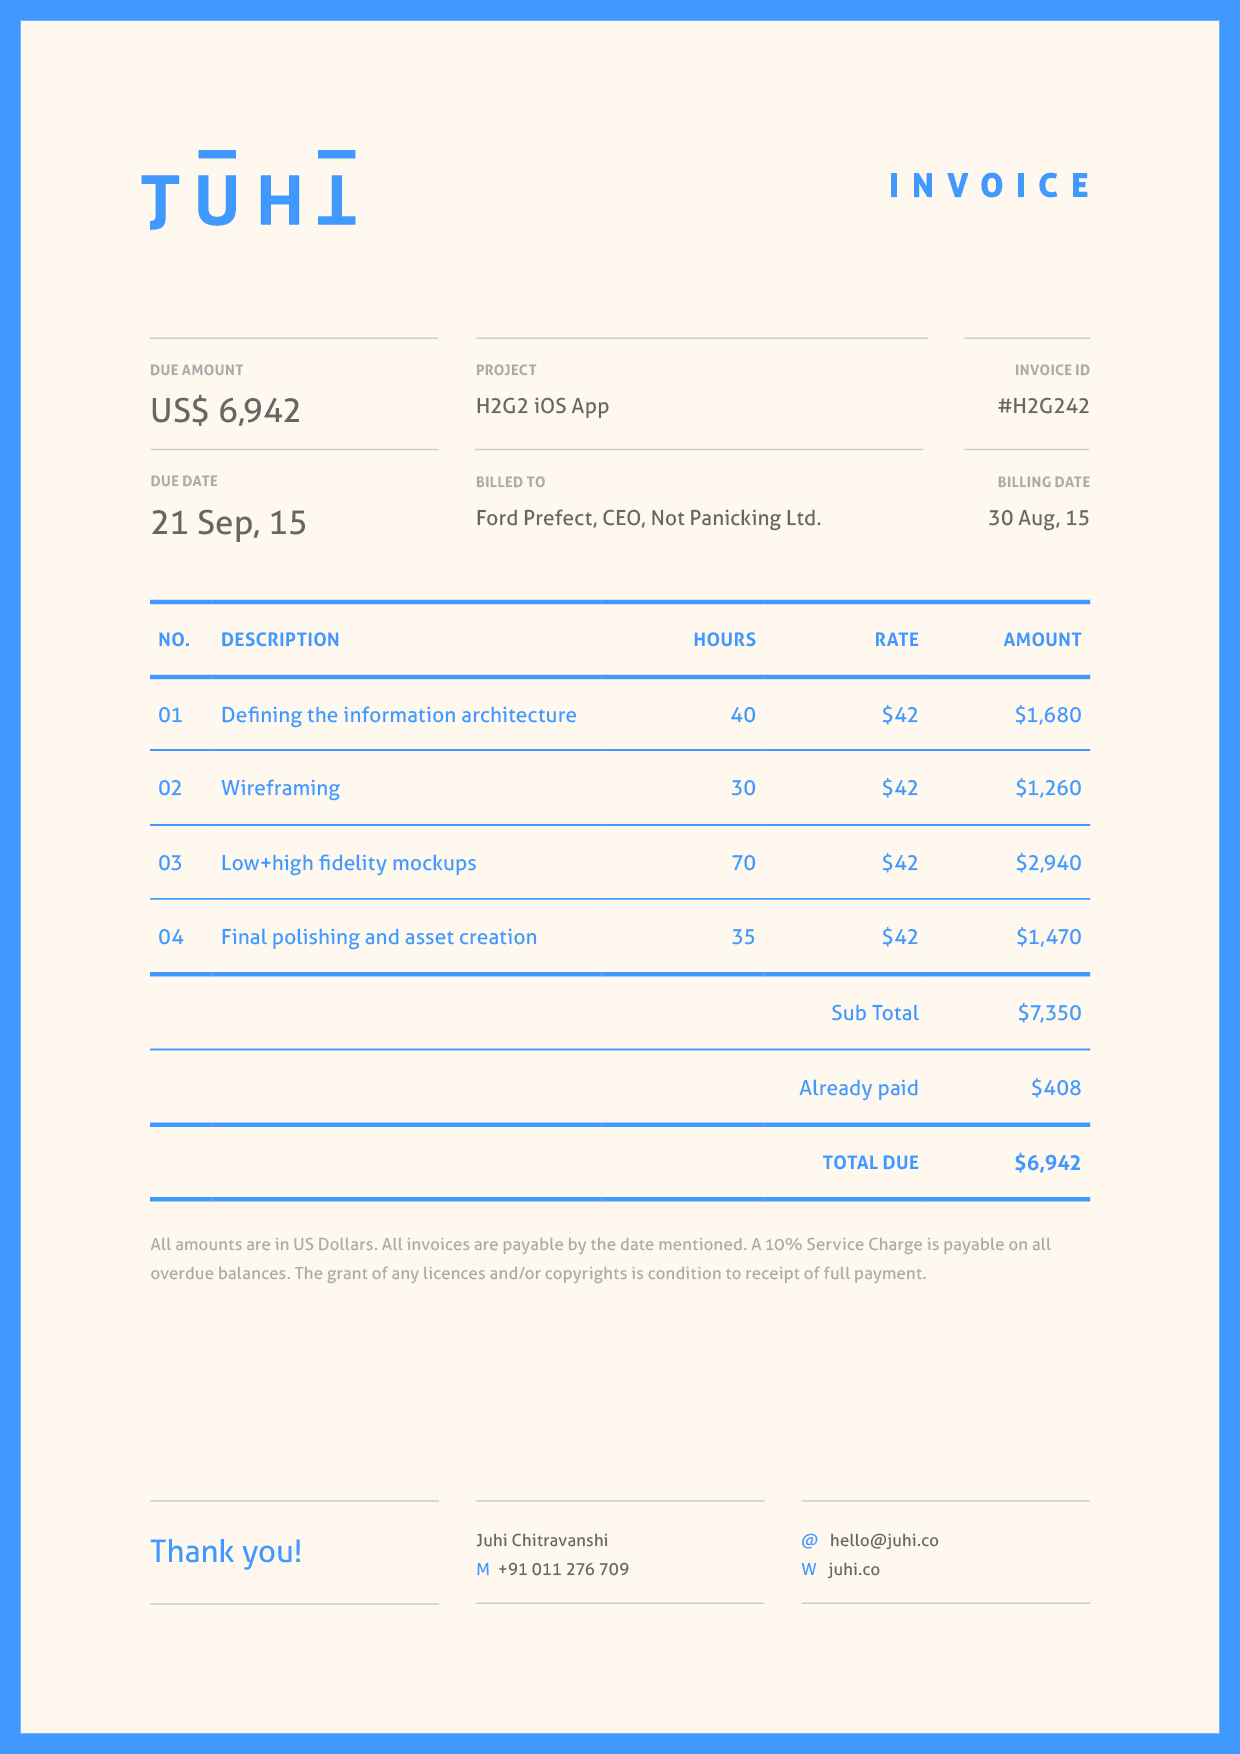 Coachoutletonlineplusus  Personable Dont Hold Back On Your Invoice  Inspiring Designs  With Gorgeous Invoice By Juhi Chitravanshi Follow With Delightful Purpose Of Proforma Invoice Also Sample Gst Invoice In Addition Cleaning Services Invoice Sample And Invoicing Software For Ipad As Well As Project Management And Invoicing Additionally Express Invoice Free Download From Inspirationfeedcom With Coachoutletonlineplusus  Gorgeous Dont Hold Back On Your Invoice  Inspiring Designs  With Delightful Invoice By Juhi Chitravanshi Follow And Personable Purpose Of Proforma Invoice Also Sample Gst Invoice In Addition Cleaning Services Invoice Sample From Inspirationfeedcom